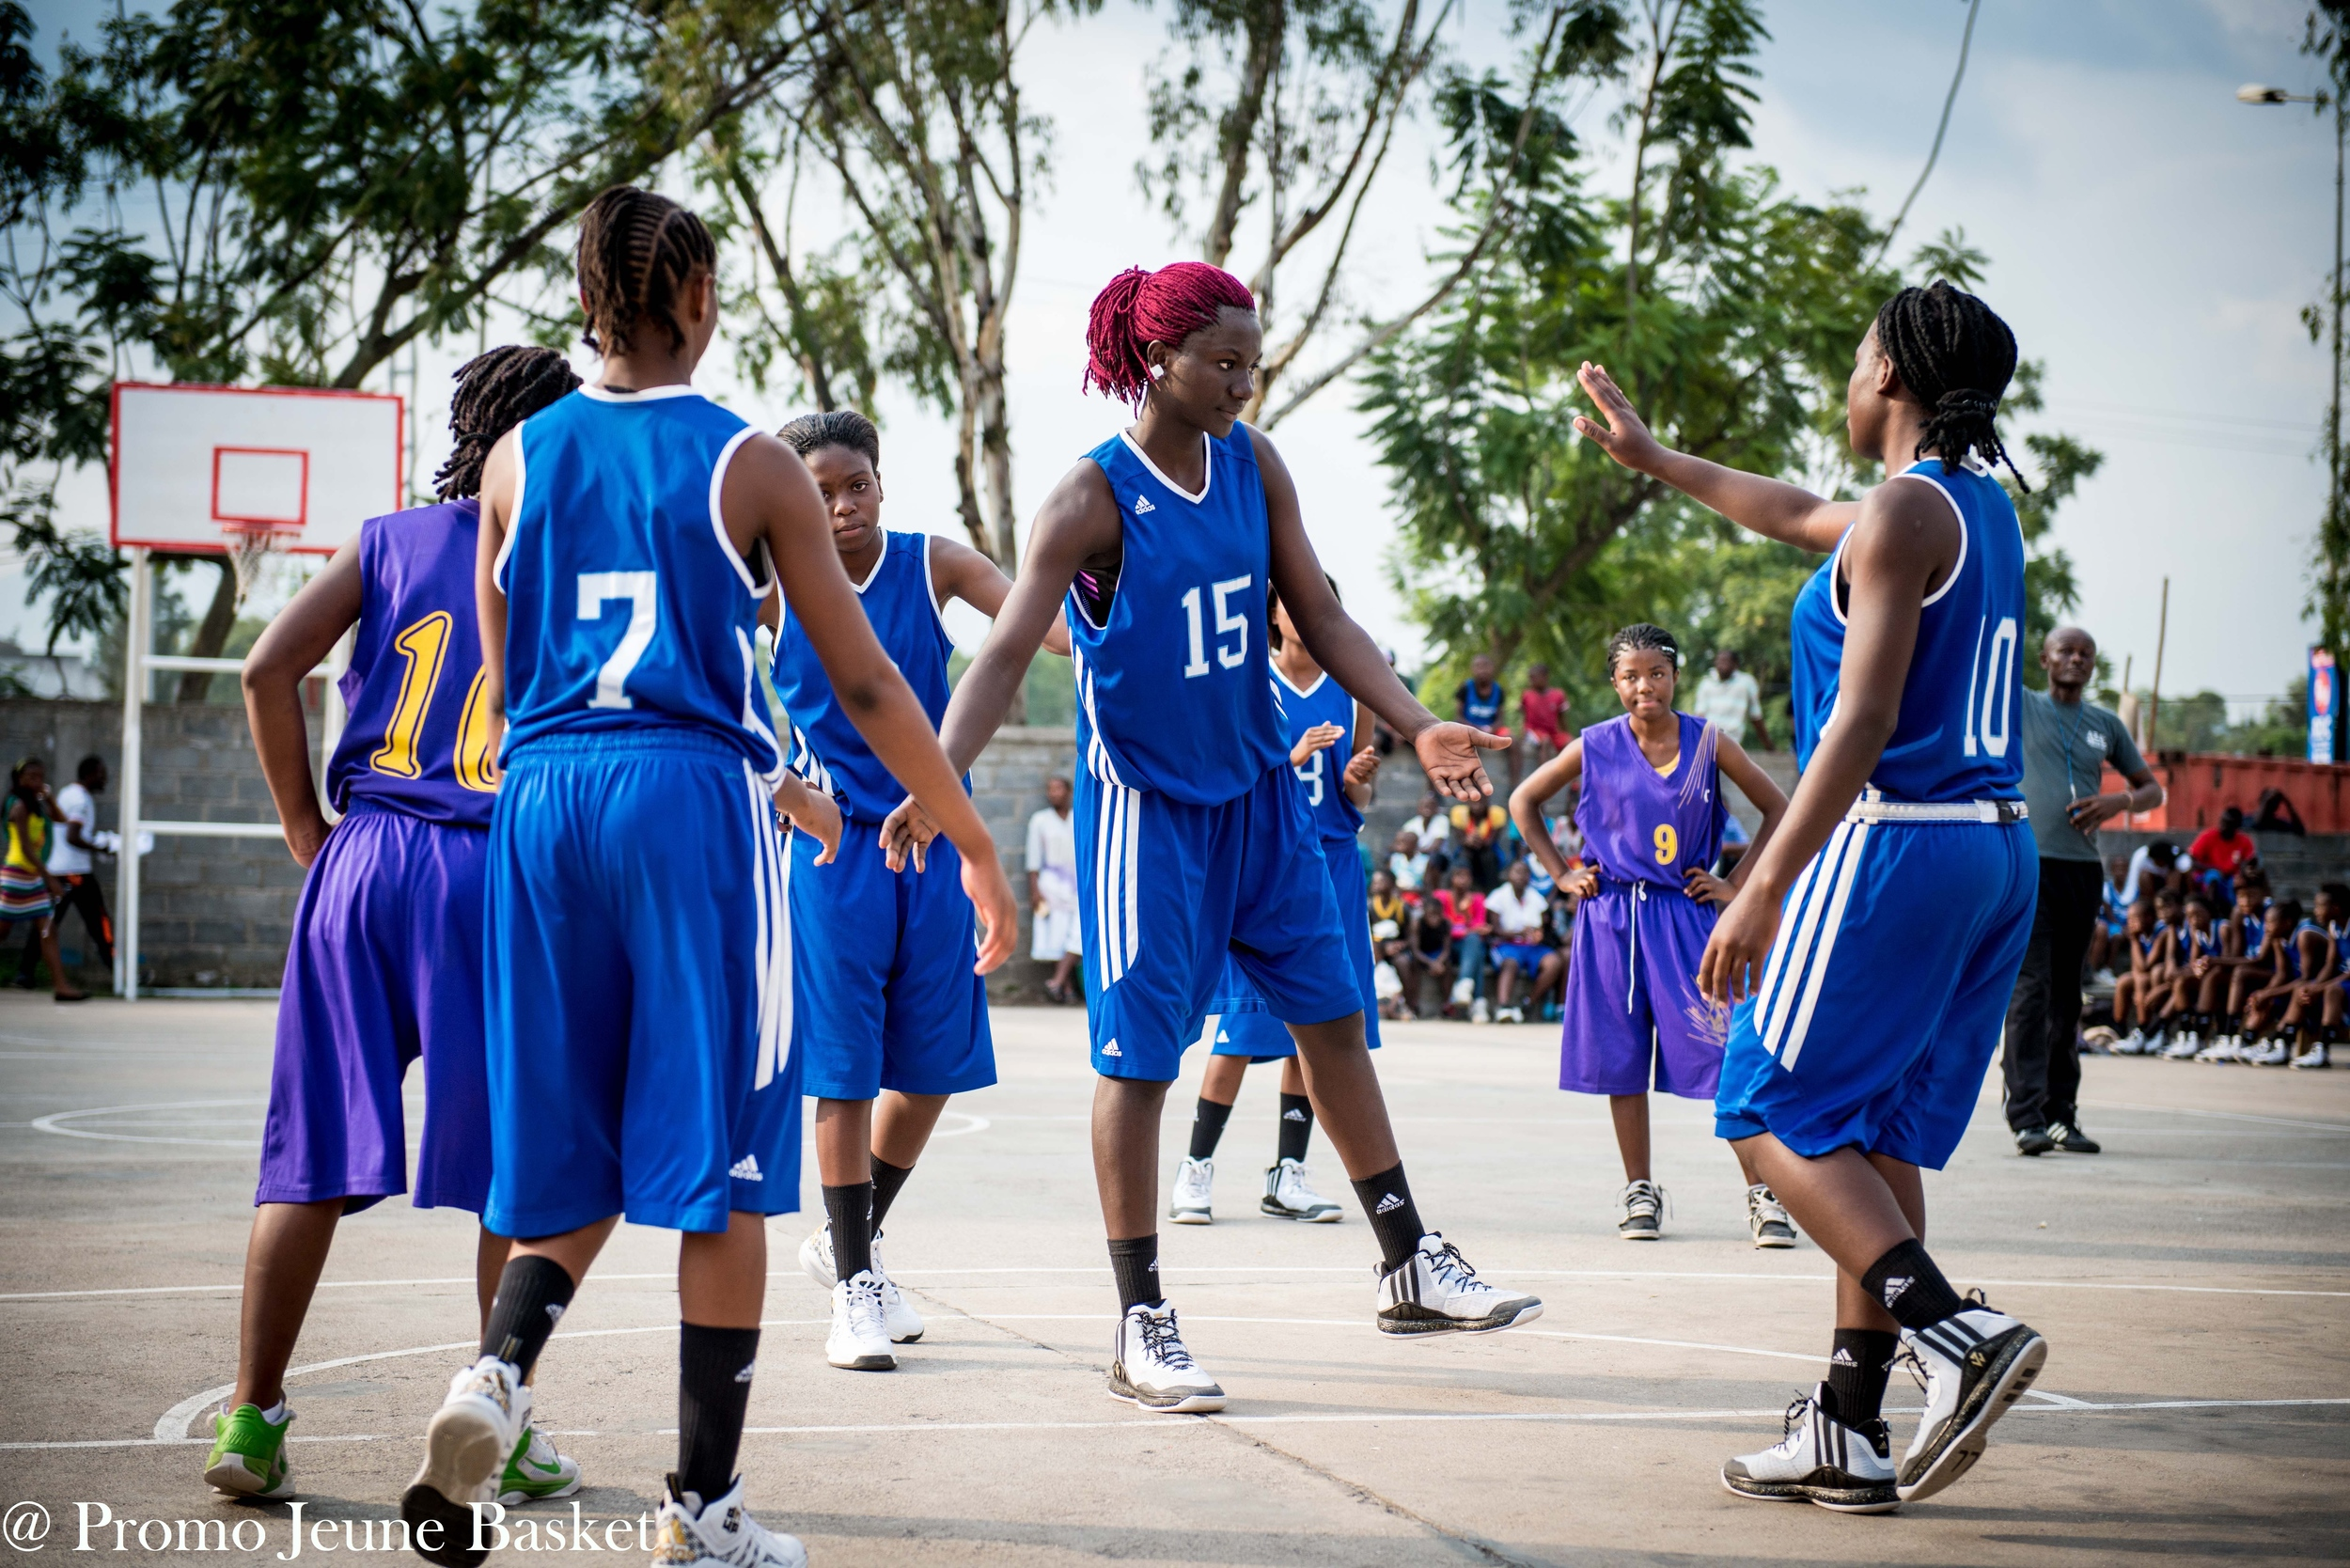 """""""Teams are made when you put aside individual wants for the collective good."""" -Chiney Ugumike"""